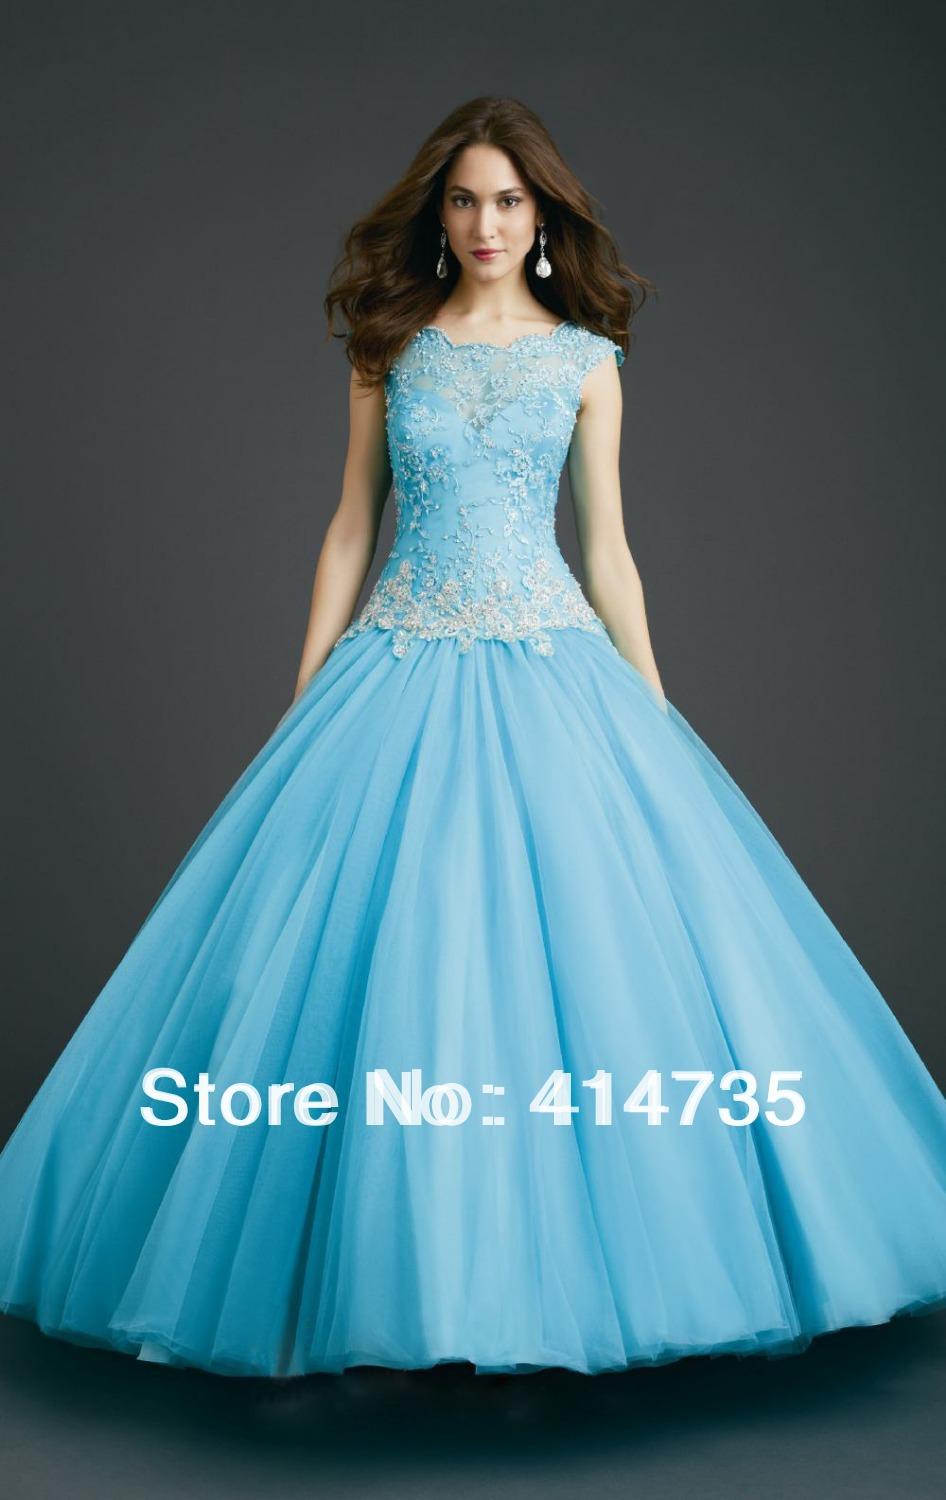 Quinceanera Dresses In Miami Mitzy Quince Mother Of Bride Formal ...